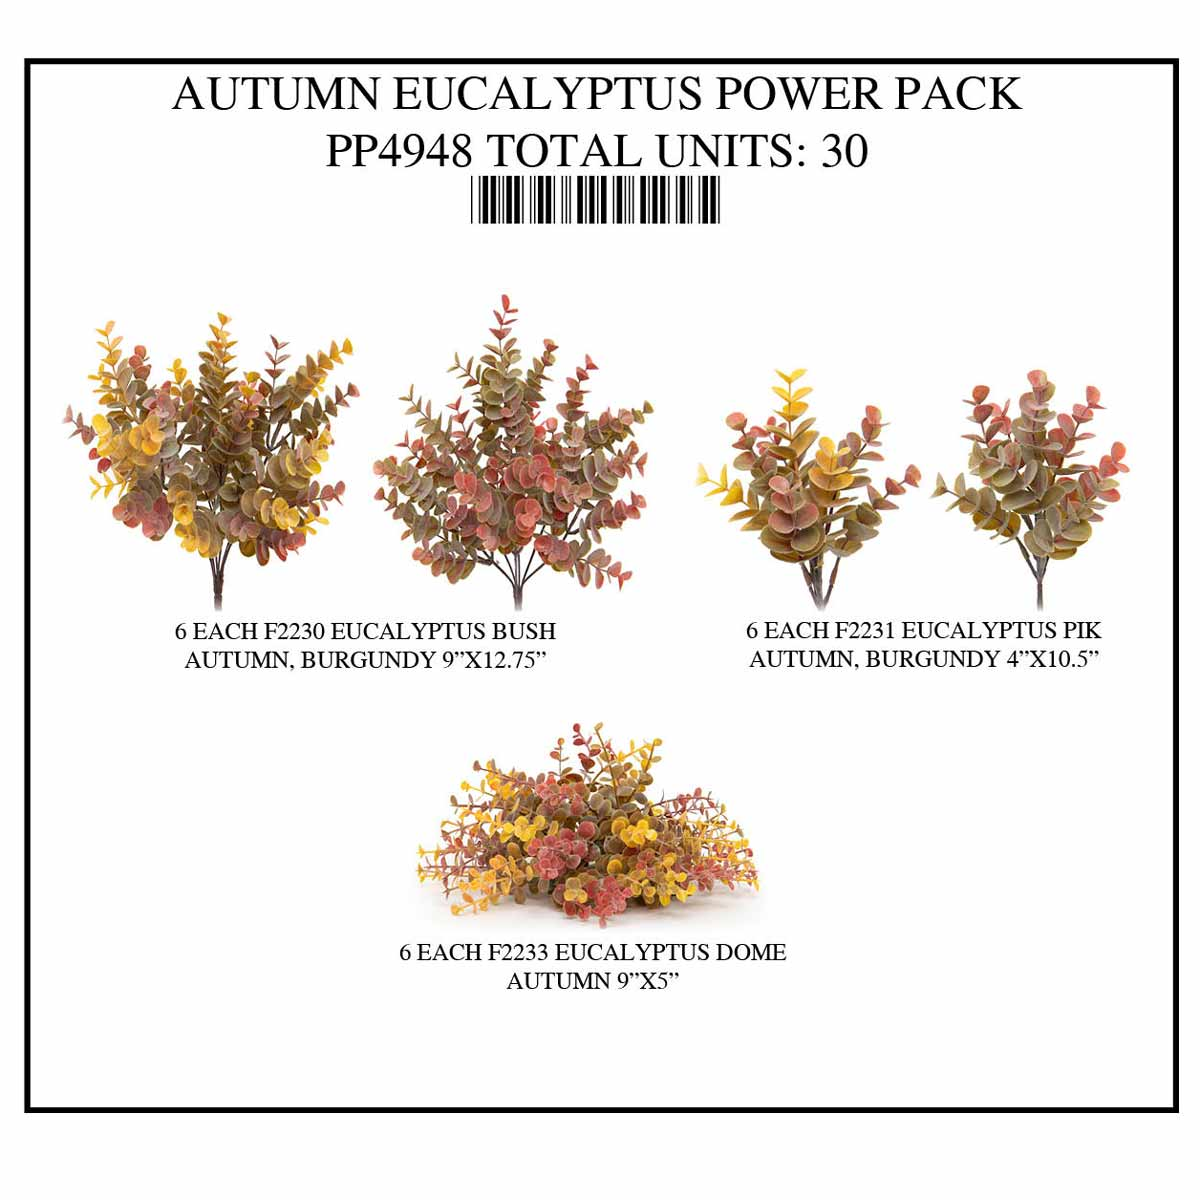 FALL EUCALYPTUS POWER PACK 30 UNITS PP4948